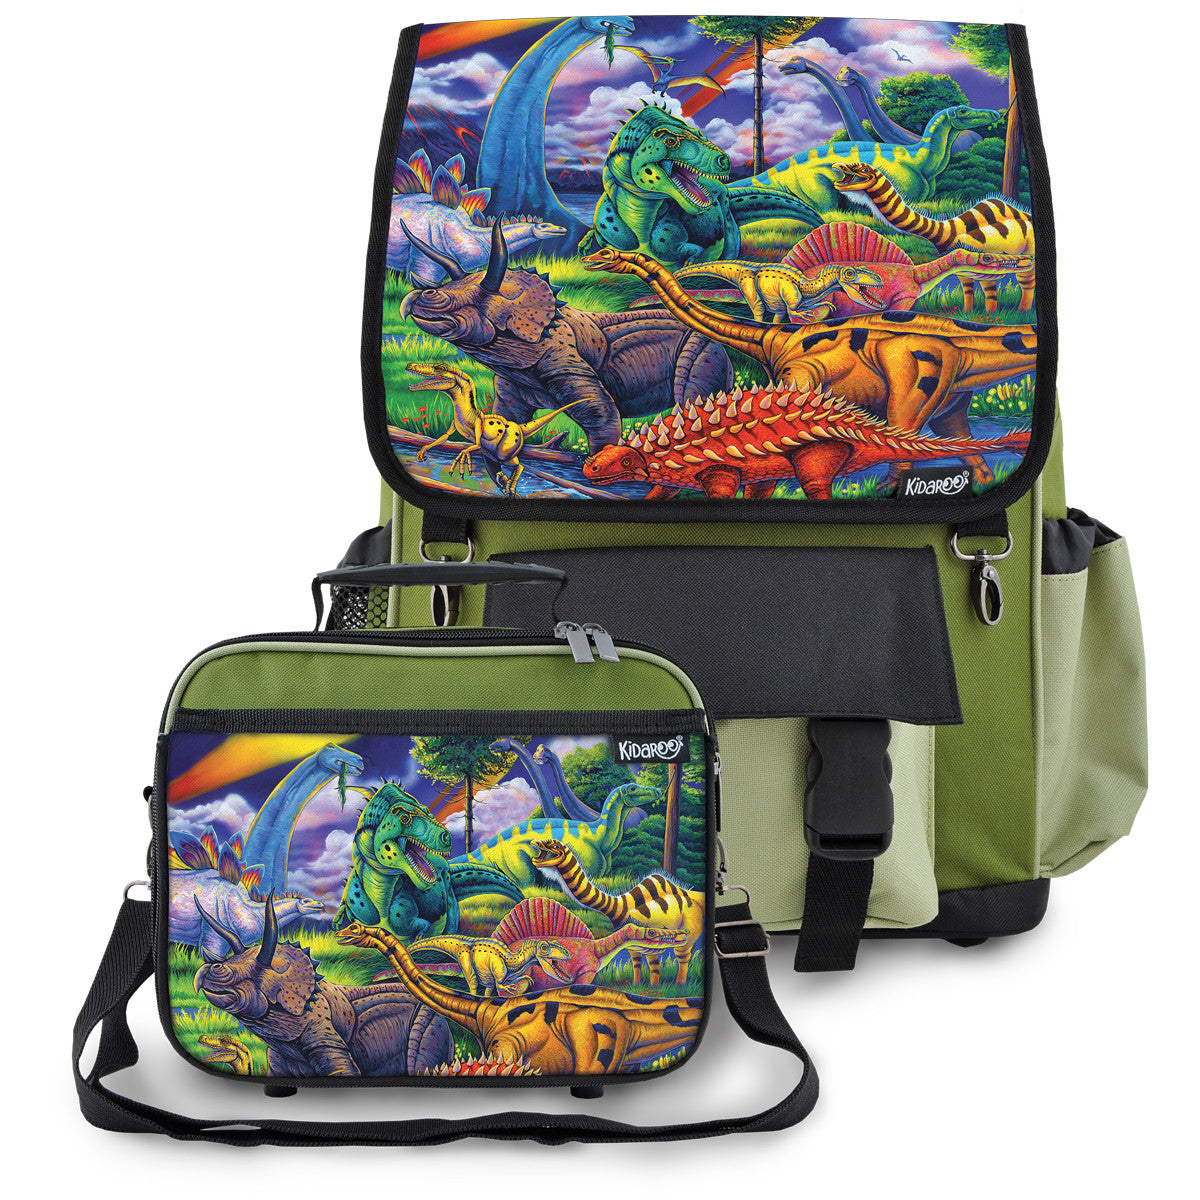 Kidaroo Green Dinosaur Jungle School Backpack & Lunchbox Set for Boys, Girls, Kids